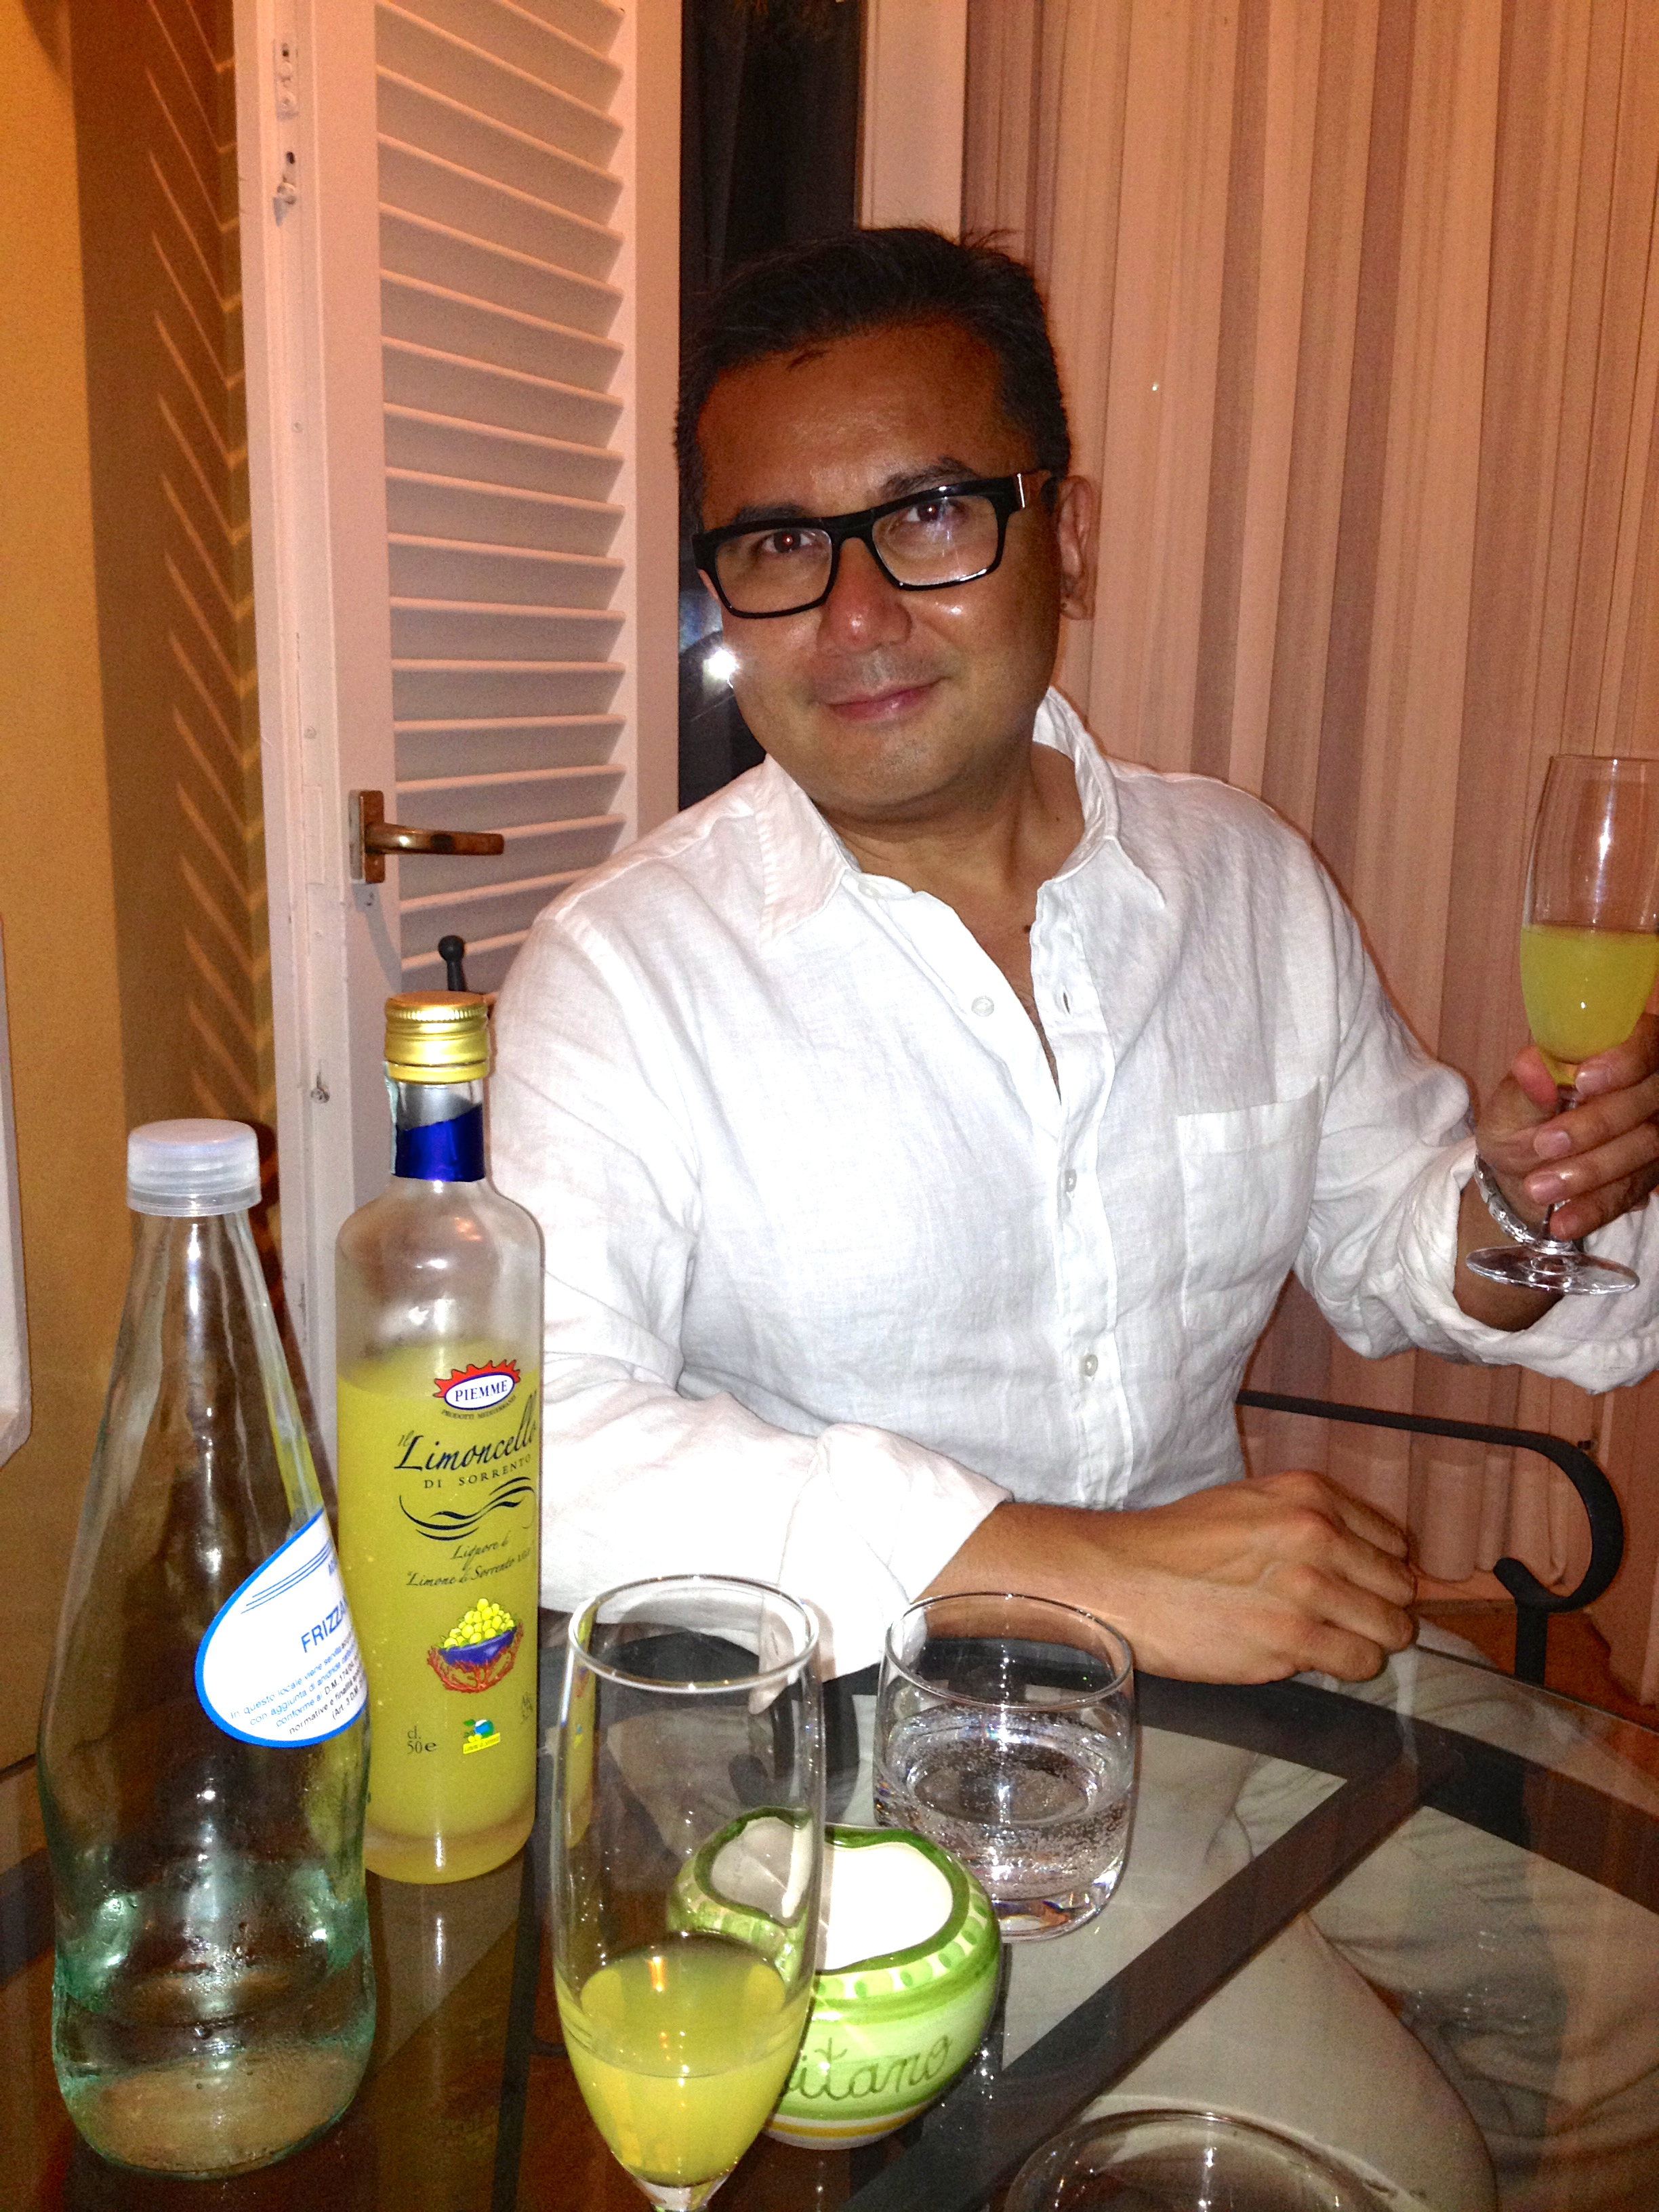 Hotel Marincanto Positano Evening Limoncello Nightcap on Balcony